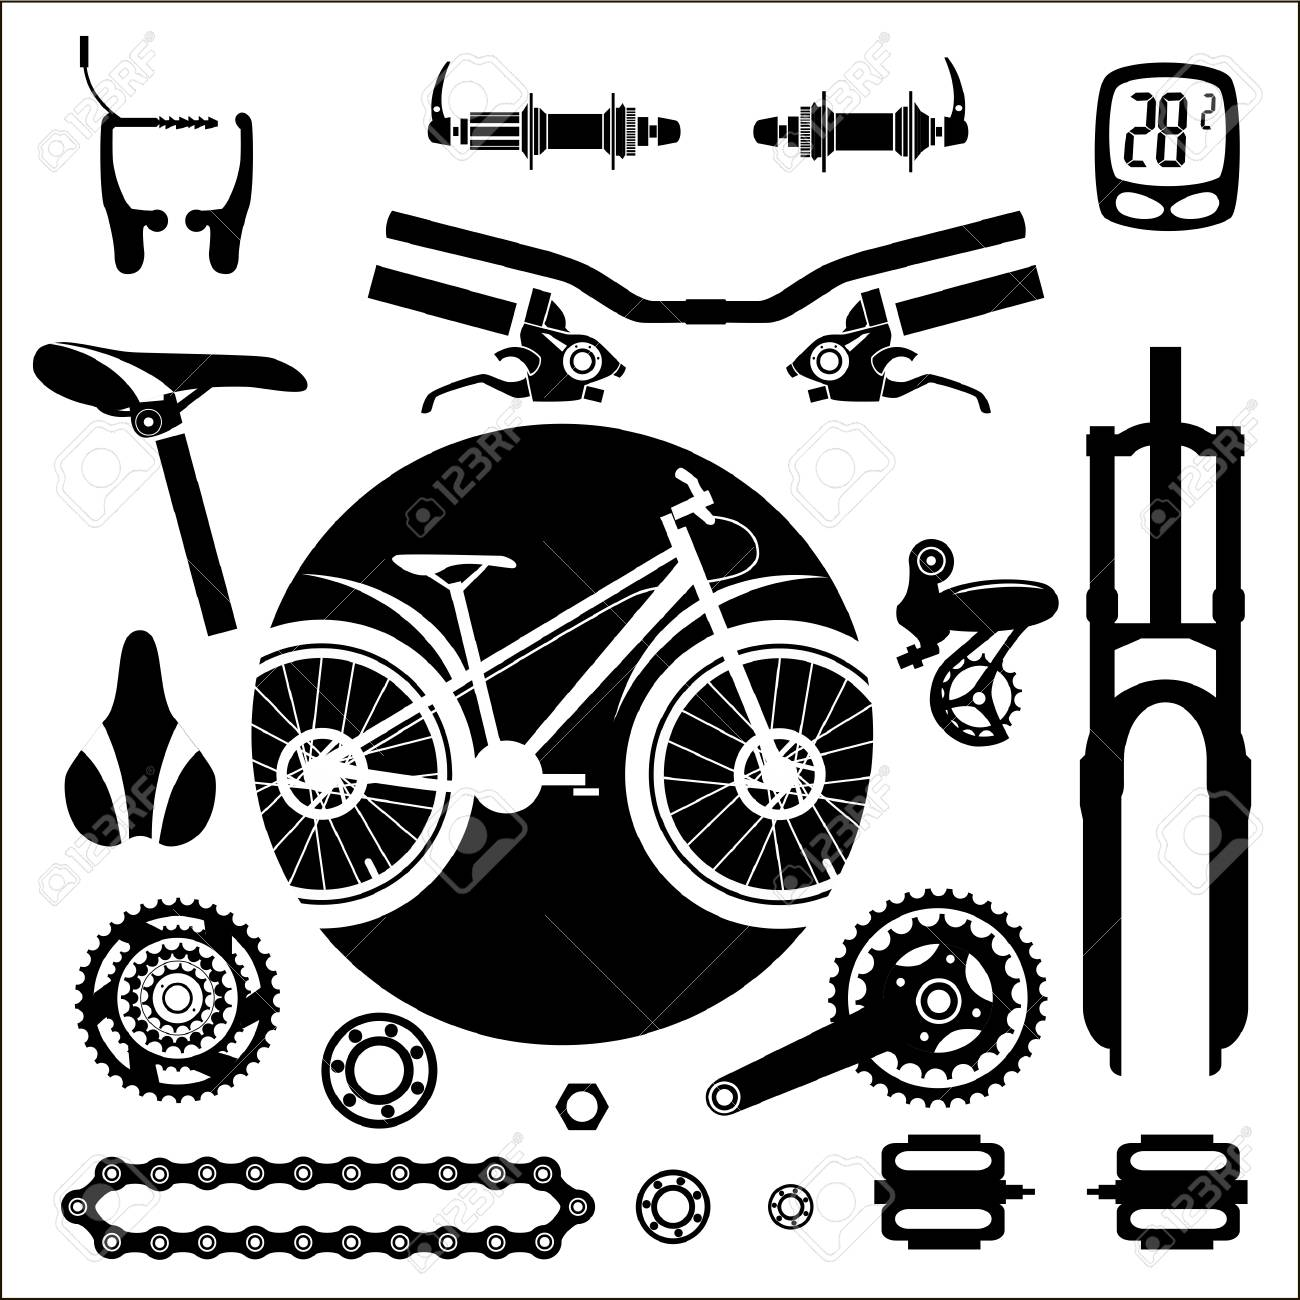 Bicycles A Set Of Bicycle Parts Vector Royalty Free Cliparts